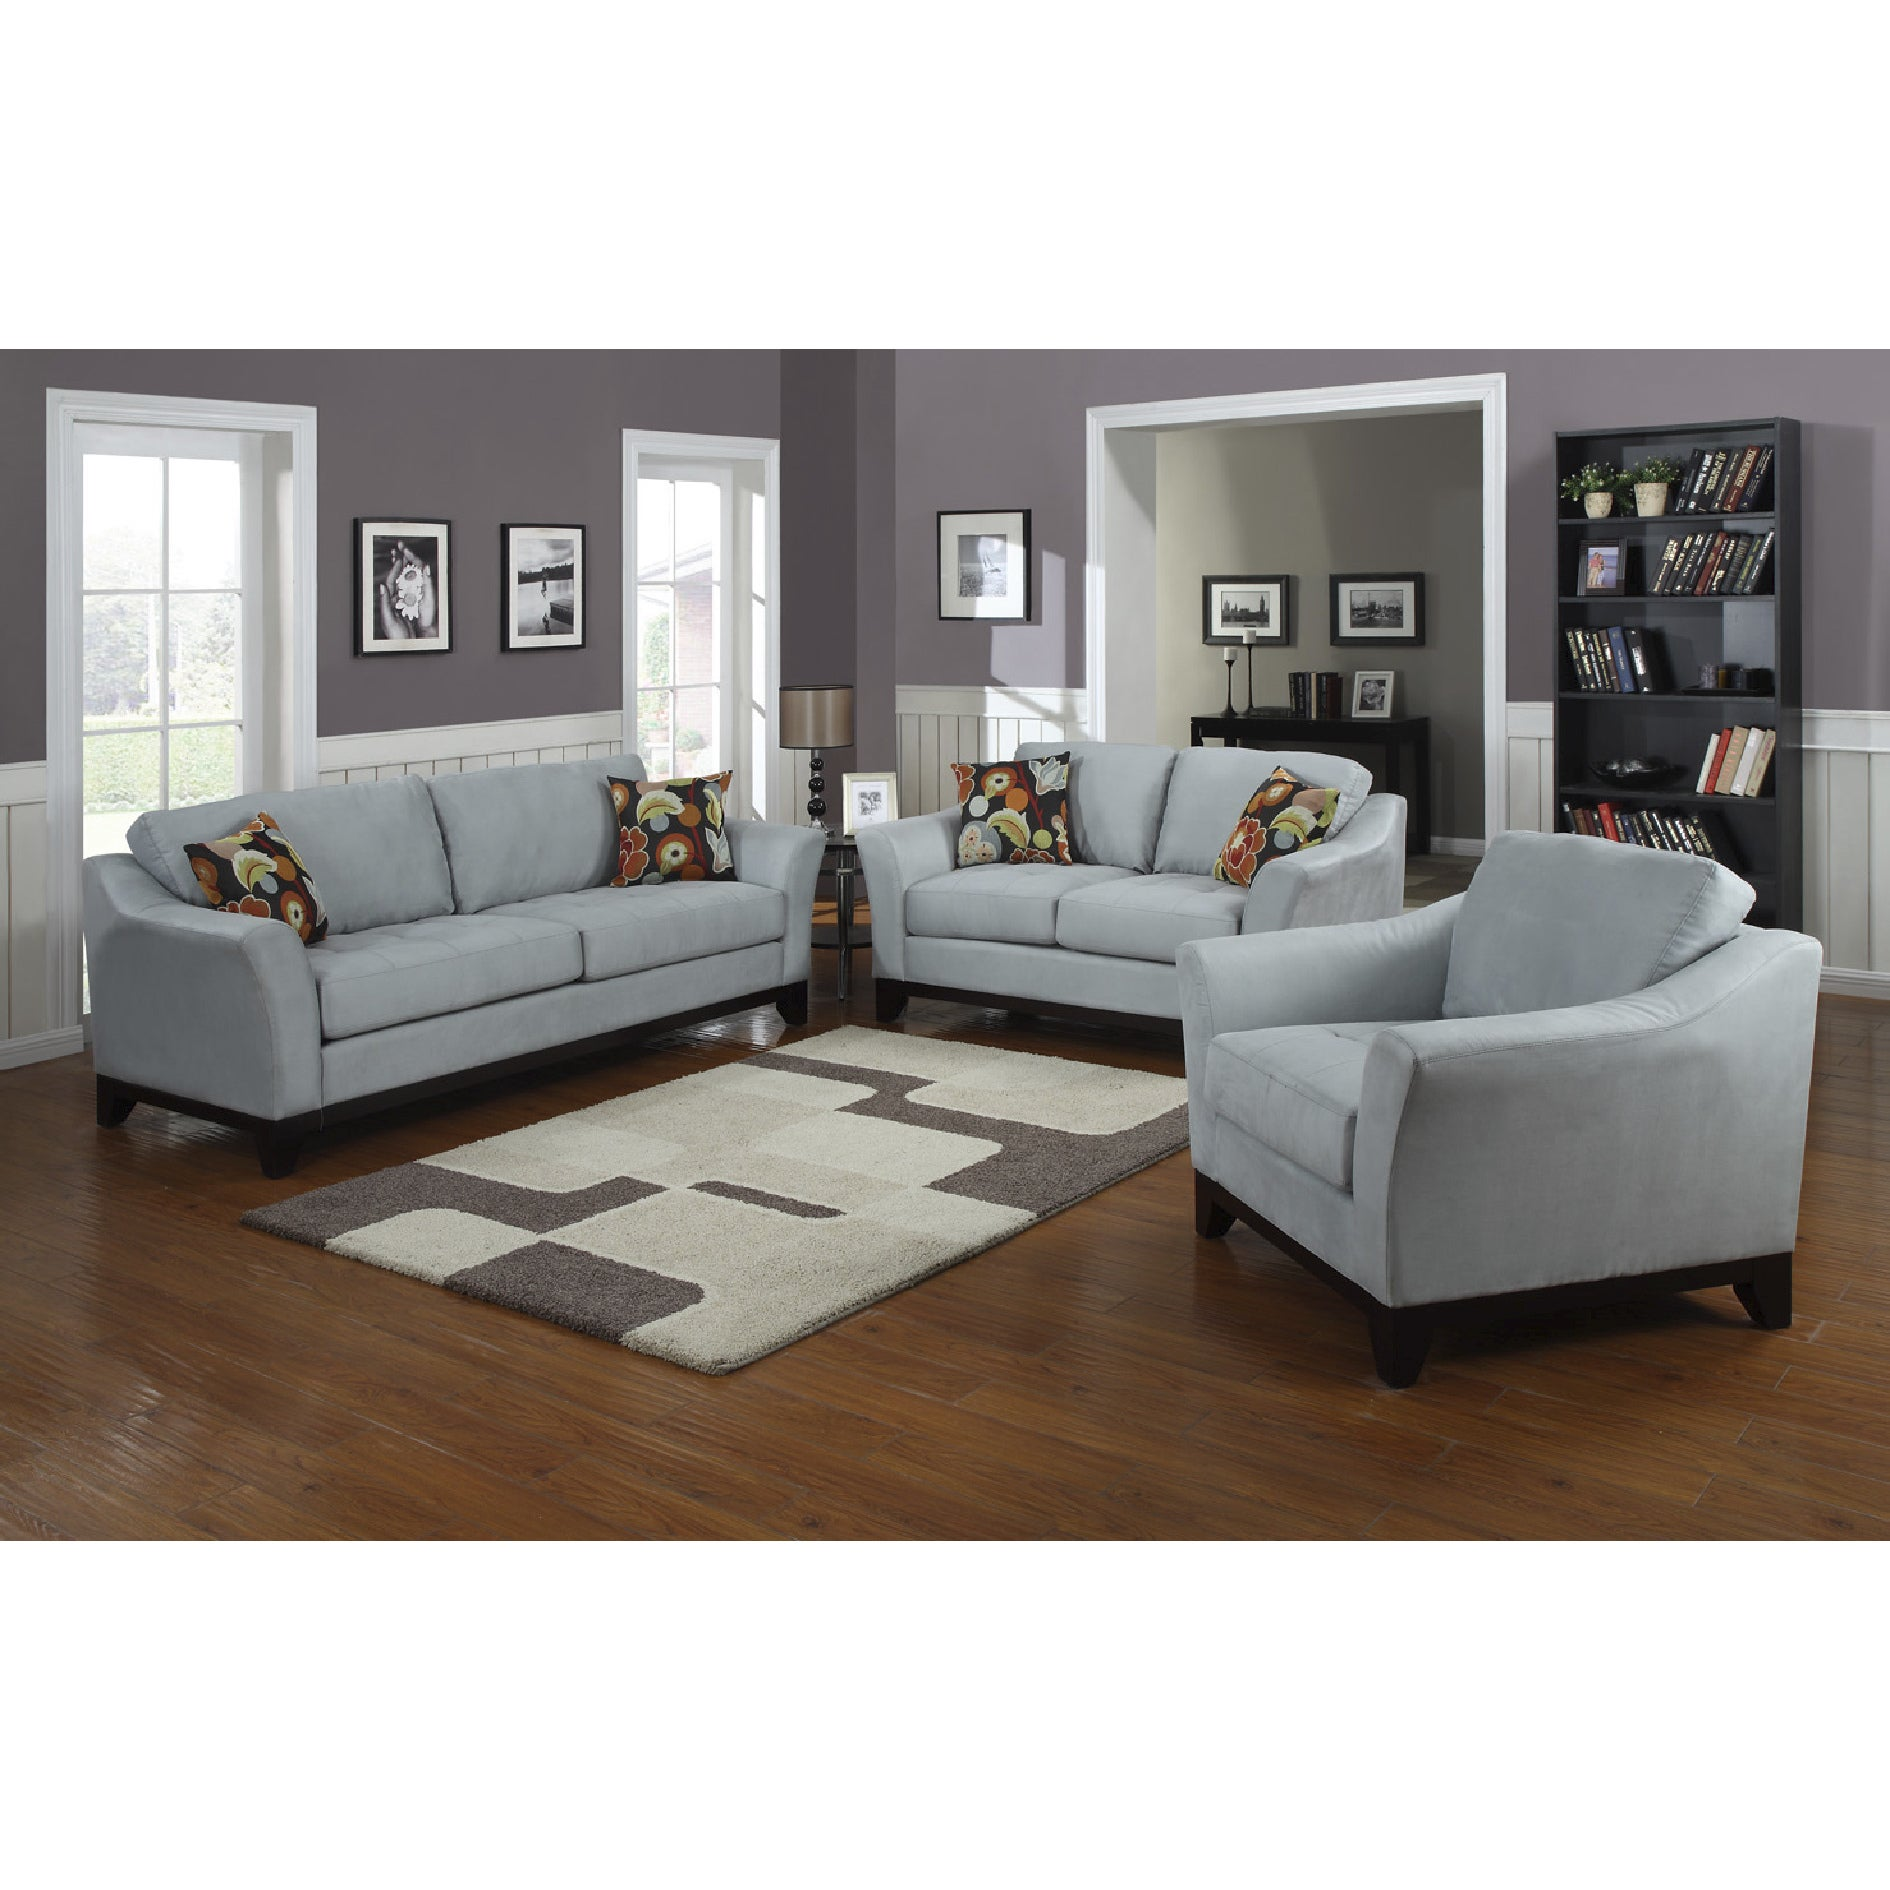 Porter avalon powder blue closeout living room sofa loveseat set with woven floral accent pillows